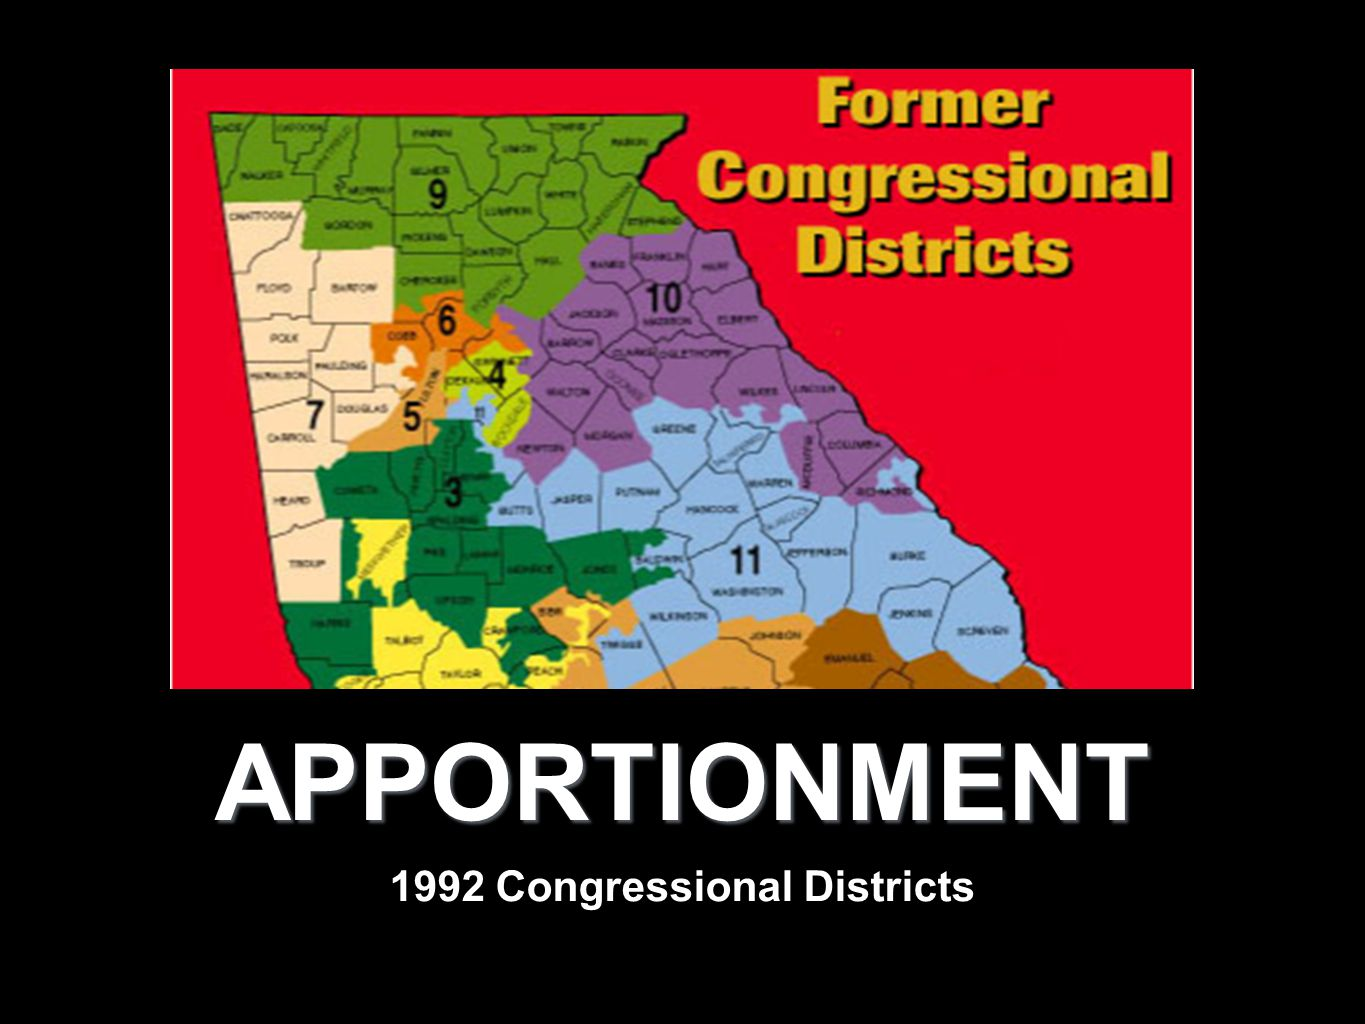 APPORTIONMENT 1992 Congressional Districts